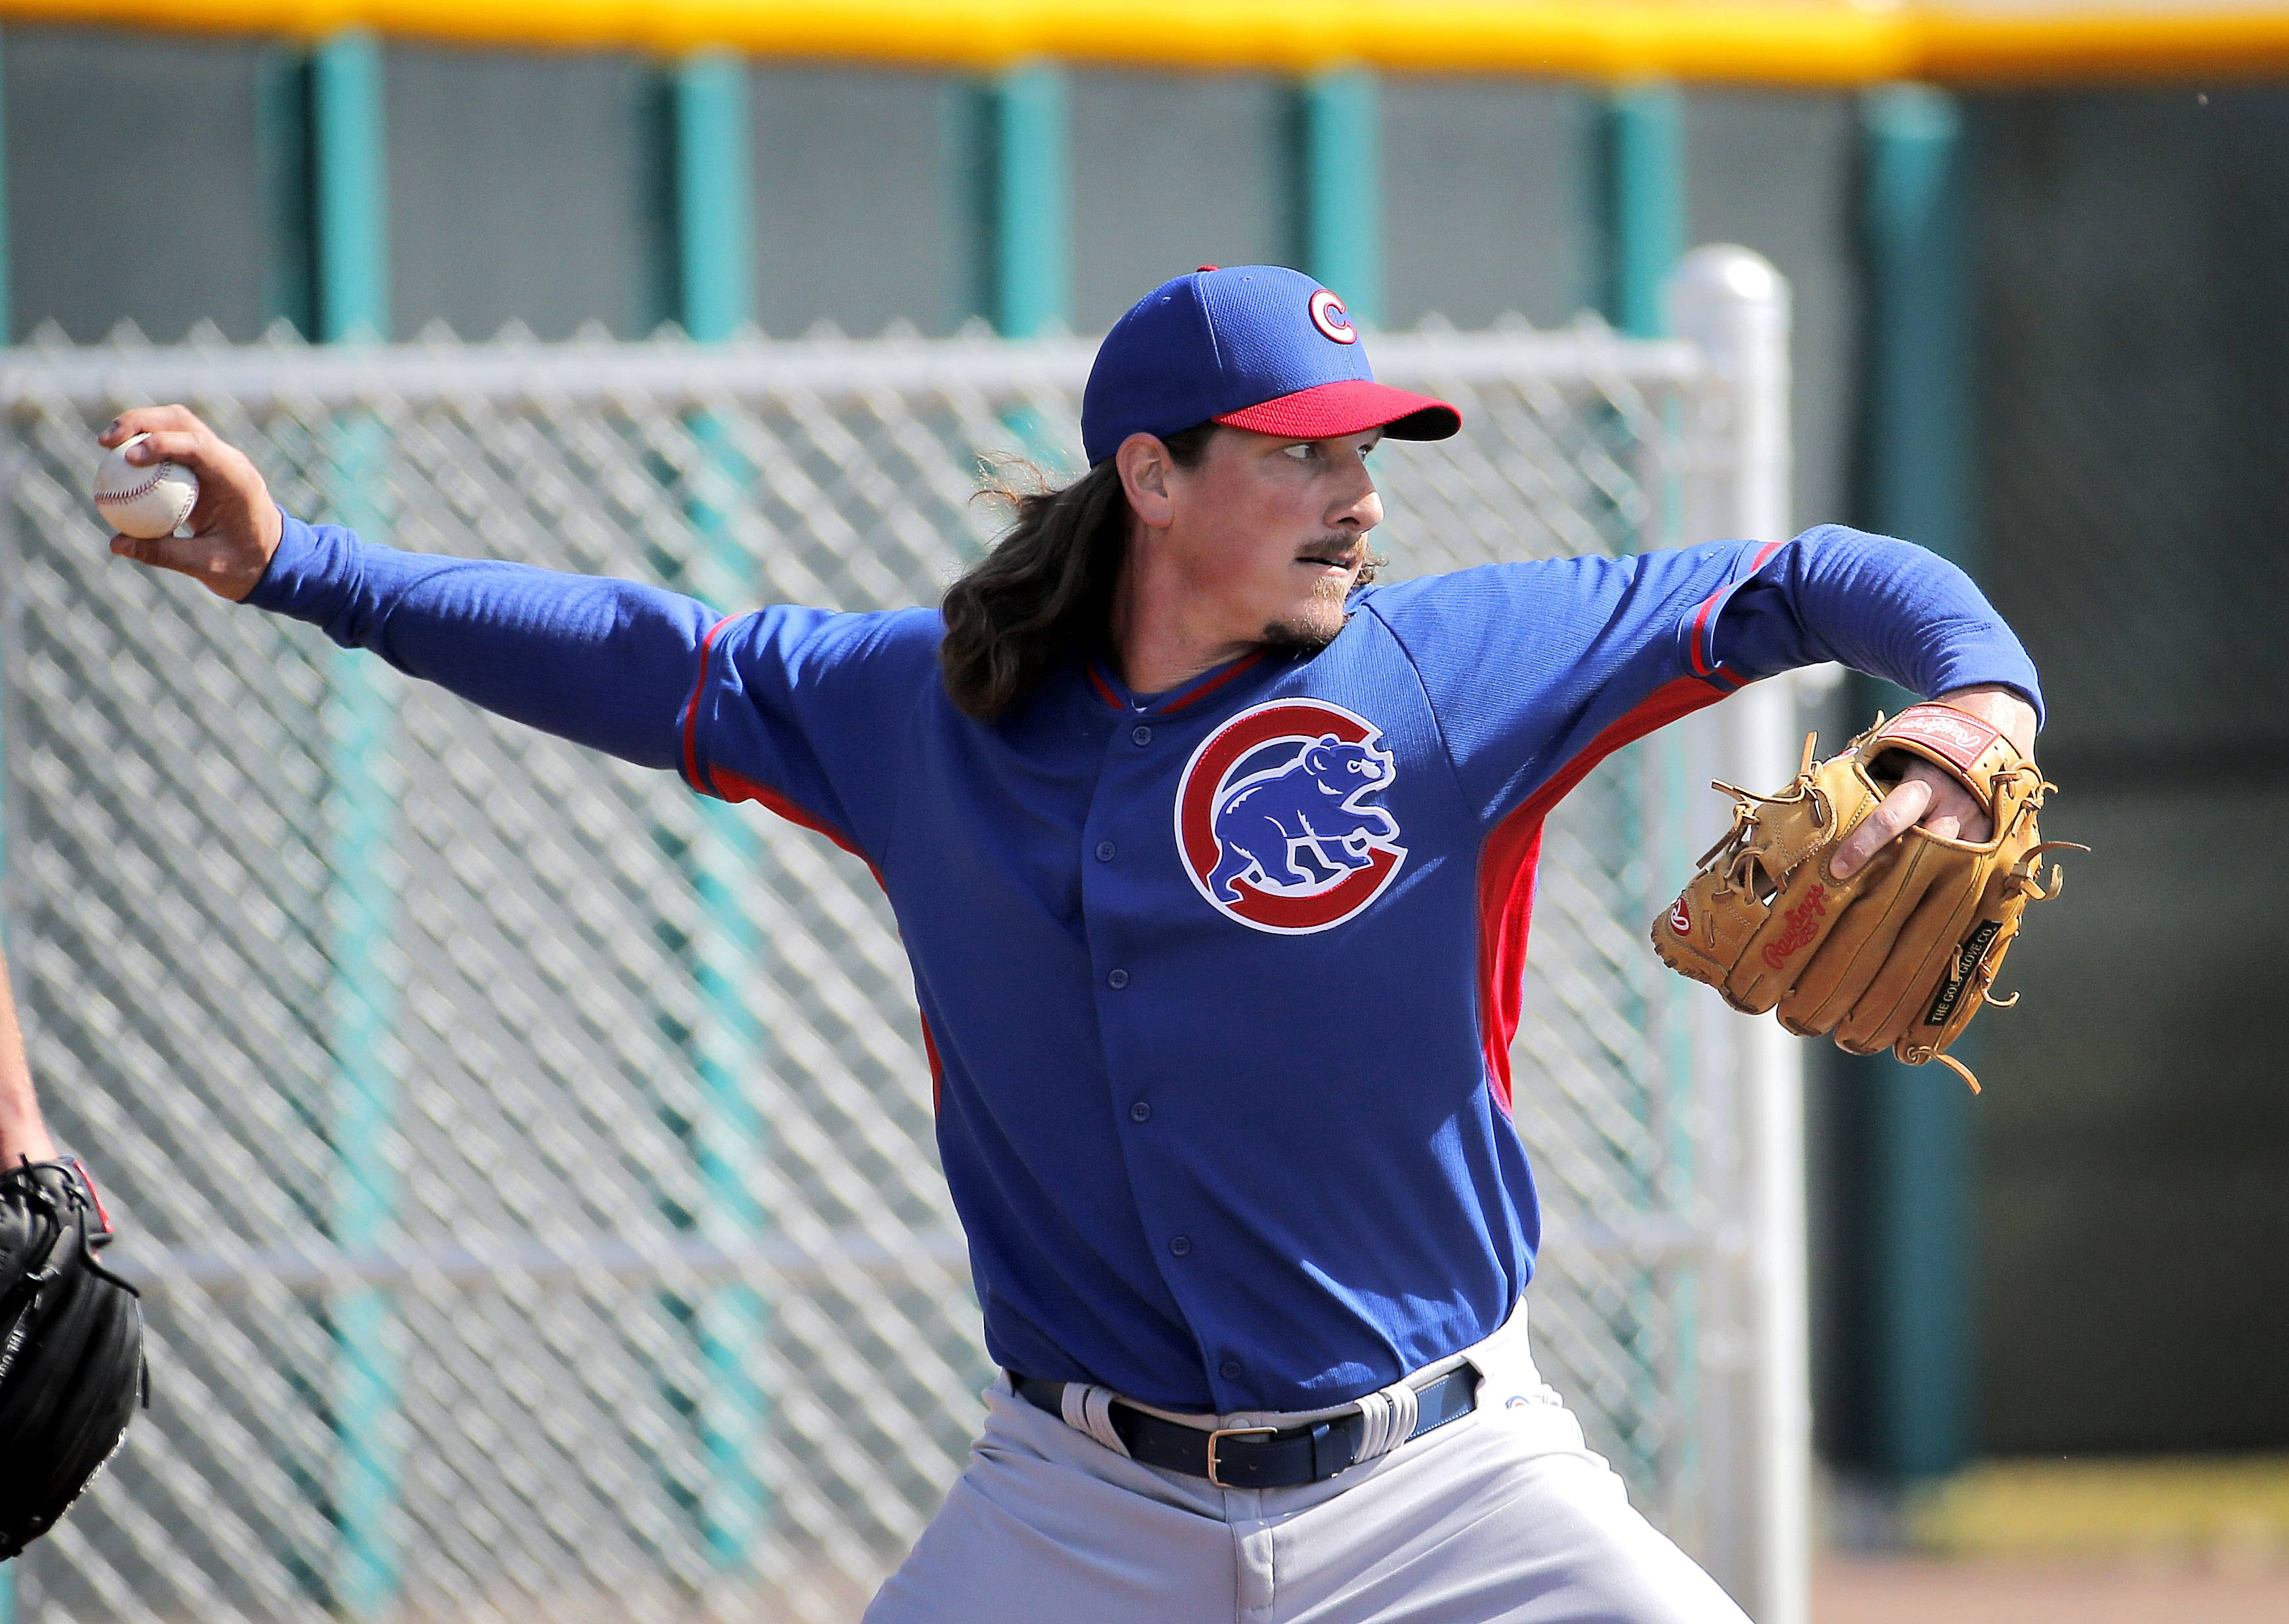 Chicago Cubs pitcher Jeff Samardzija throws during the team's first spring training baseball practice, Friday, Feb. 14, 2014, in Mesa, Ariz.